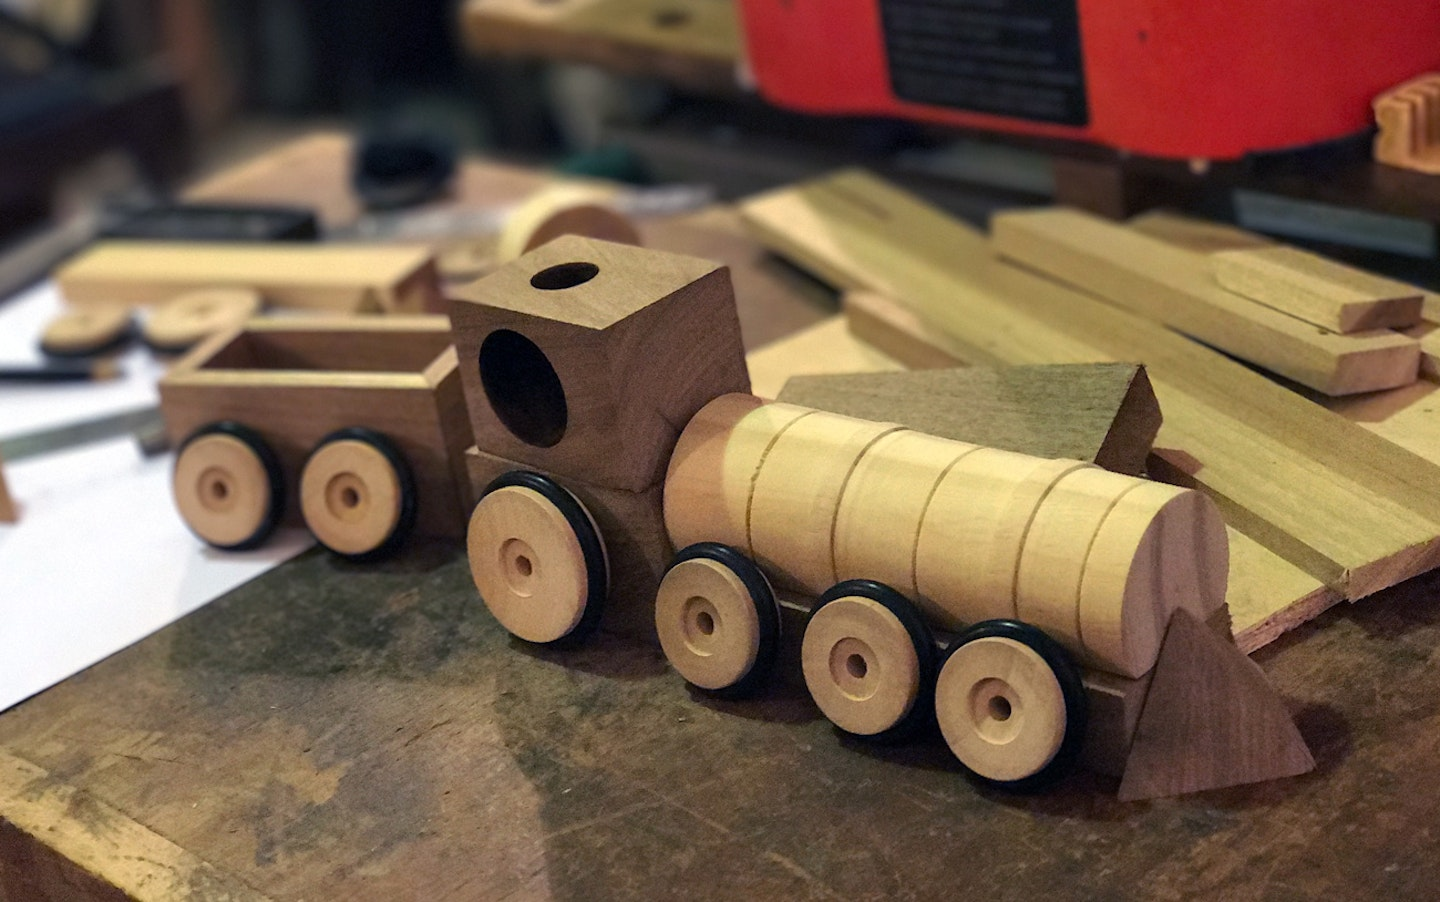 Toy train by Bruno Rovagnati during a VAWAA with toy designer Gonzalo in Buenos Aires. Courtesy of Bruno Rovagnati.